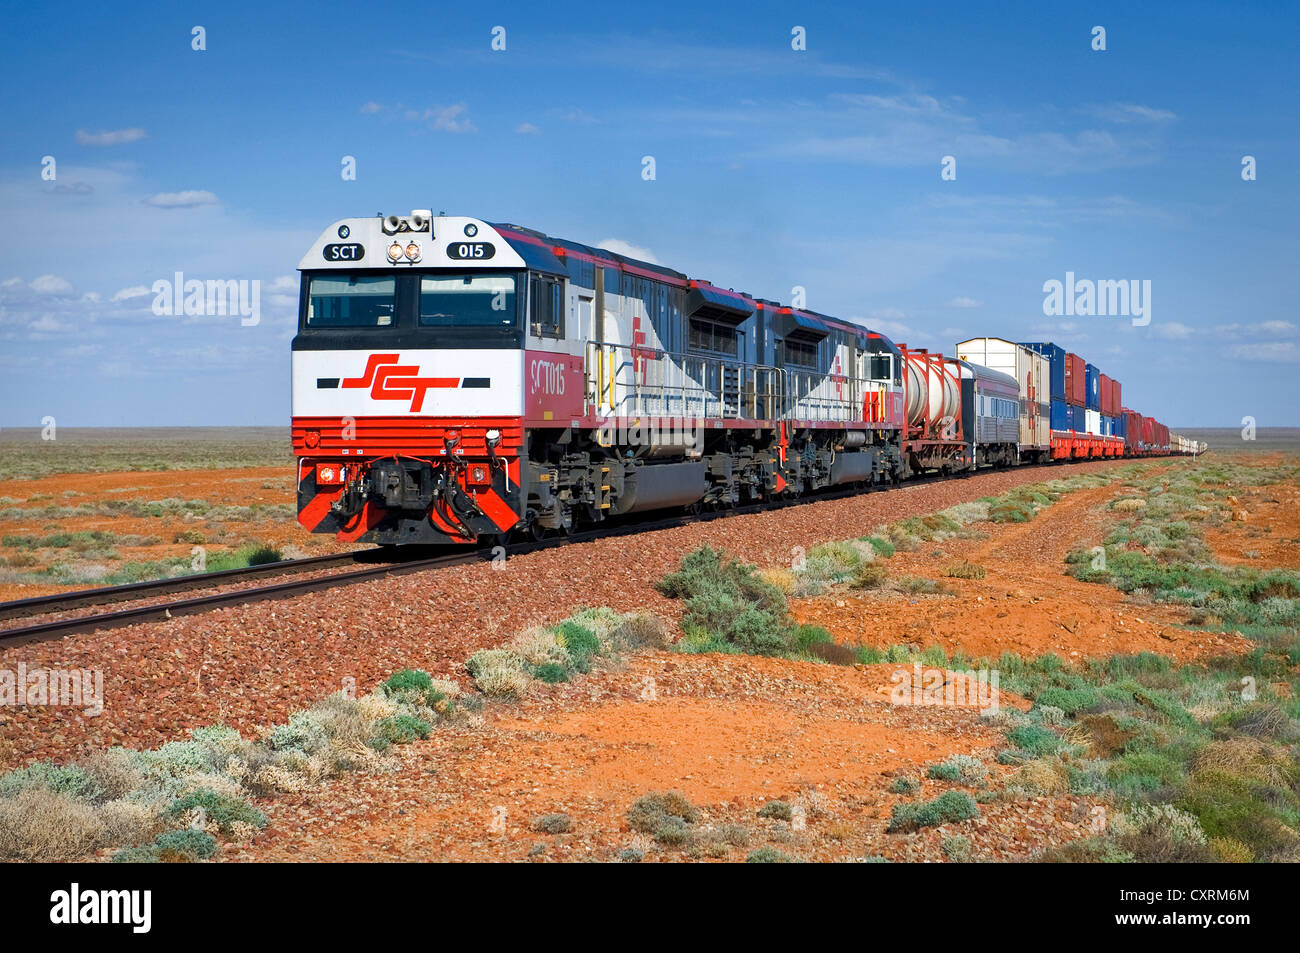 Central Australian Railway on its way through the deserts. - Stock Image